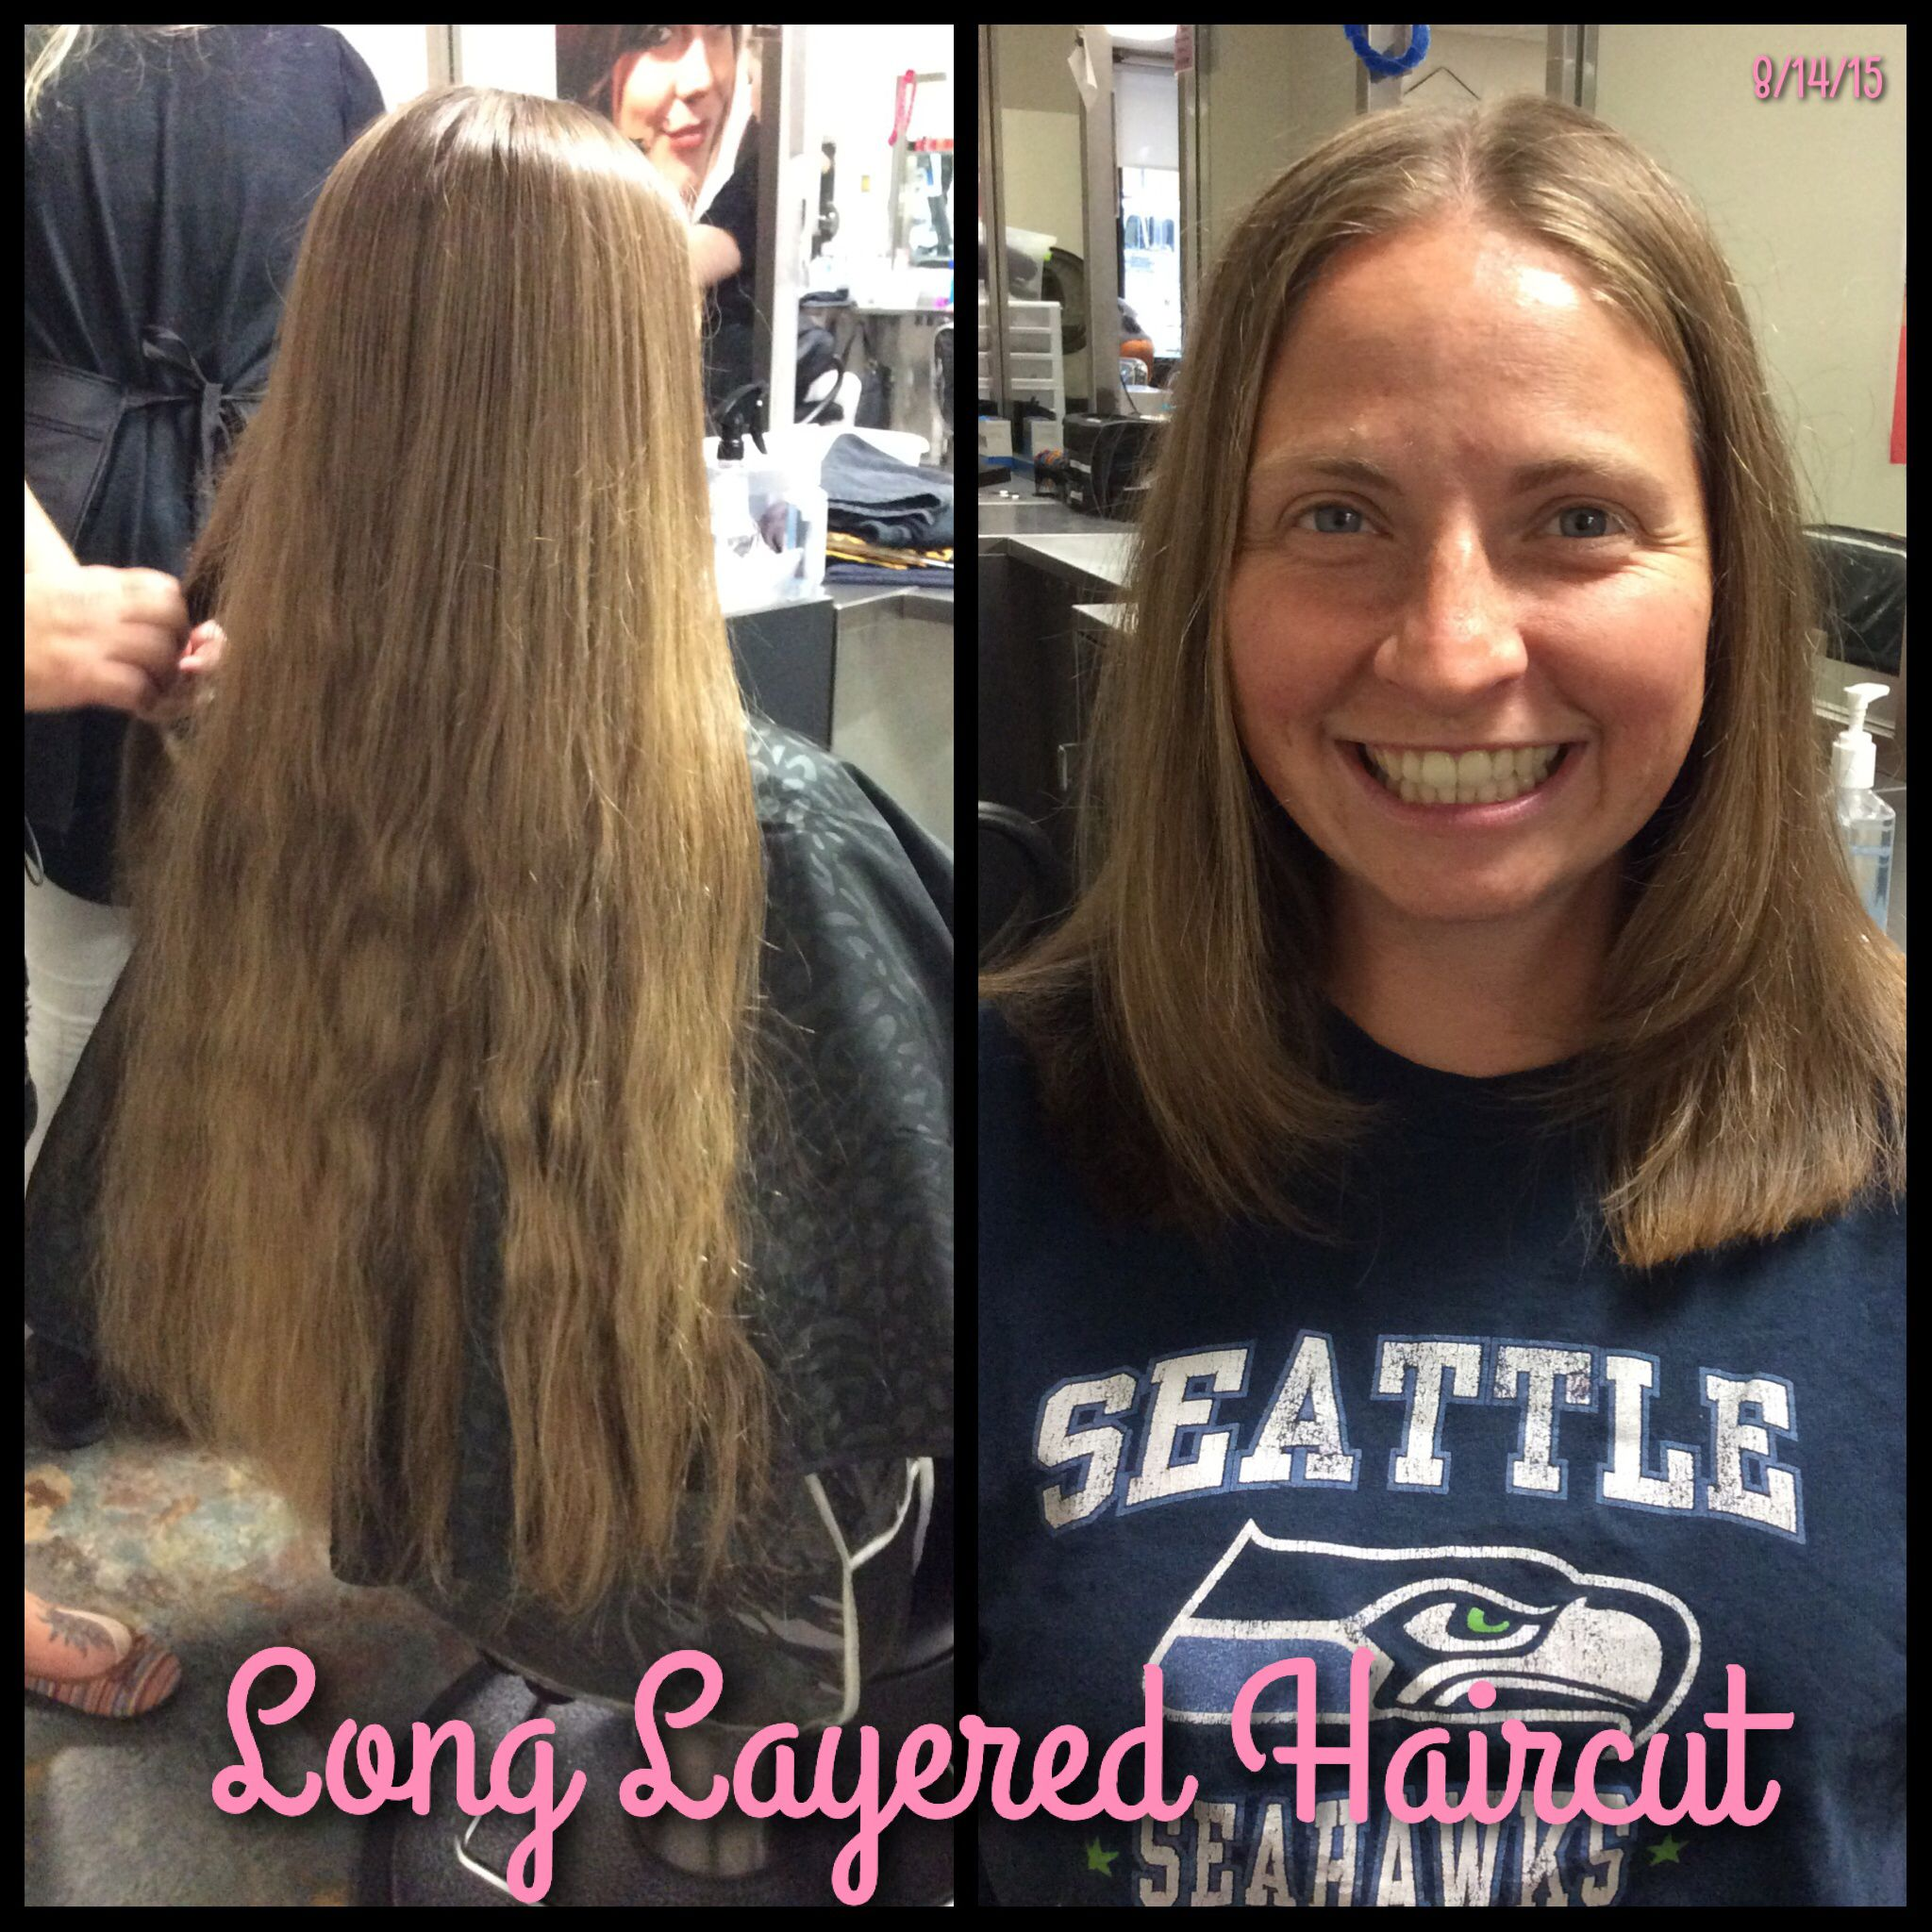 Long Layered Haircut Beautiful hair  inches off  Haircuts By